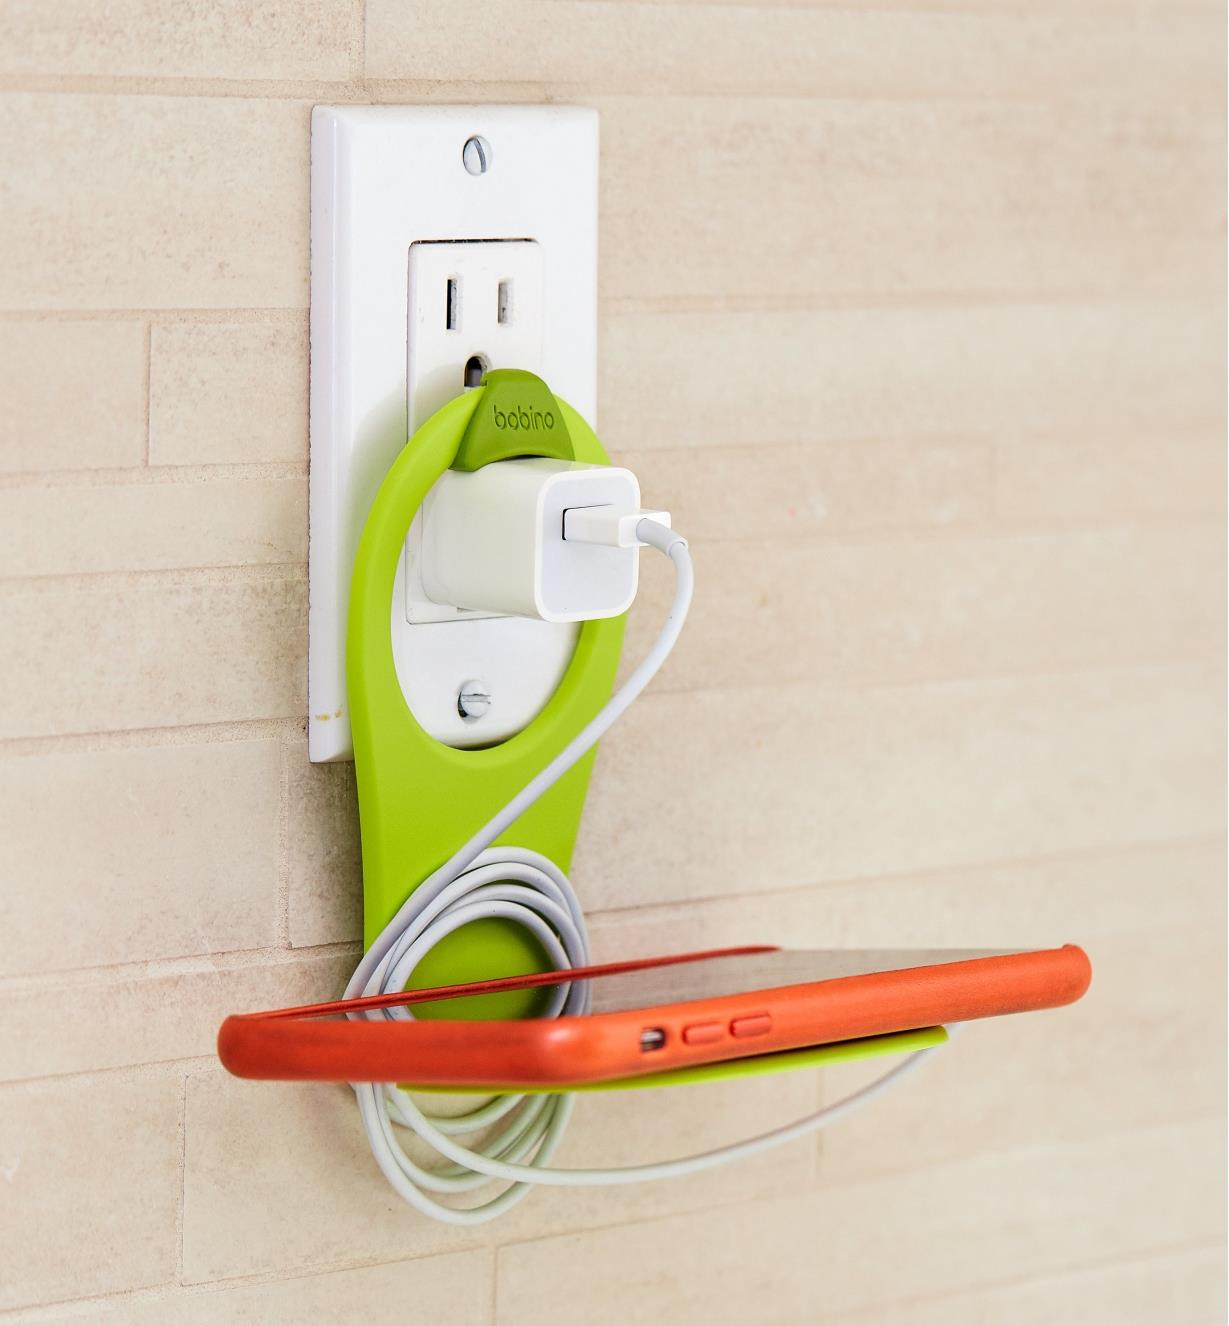 Lime Folding Phone Holder hooked over a charger in an outlet, holding a cell phone